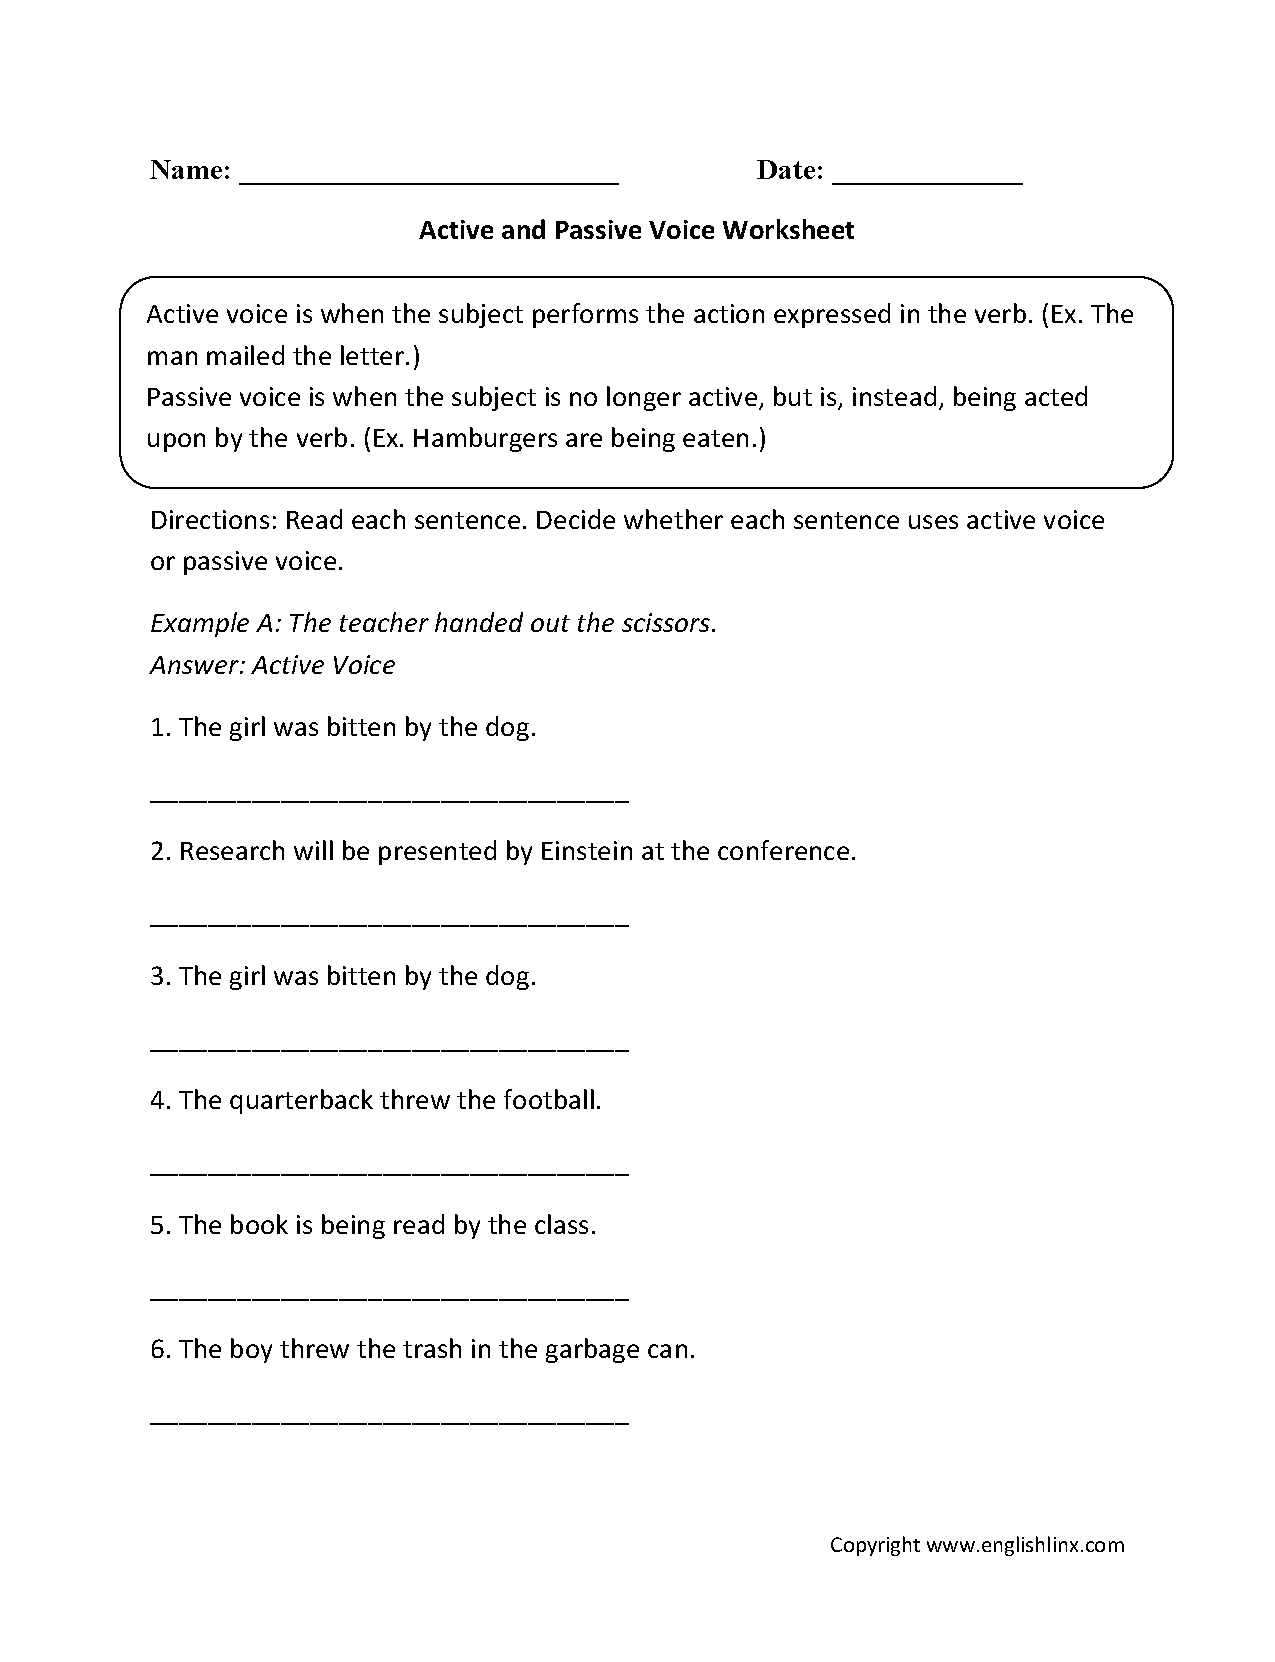 Printables Active And Passive Voice Worksheet englishlinx com active and passive voice worksheets worksheet